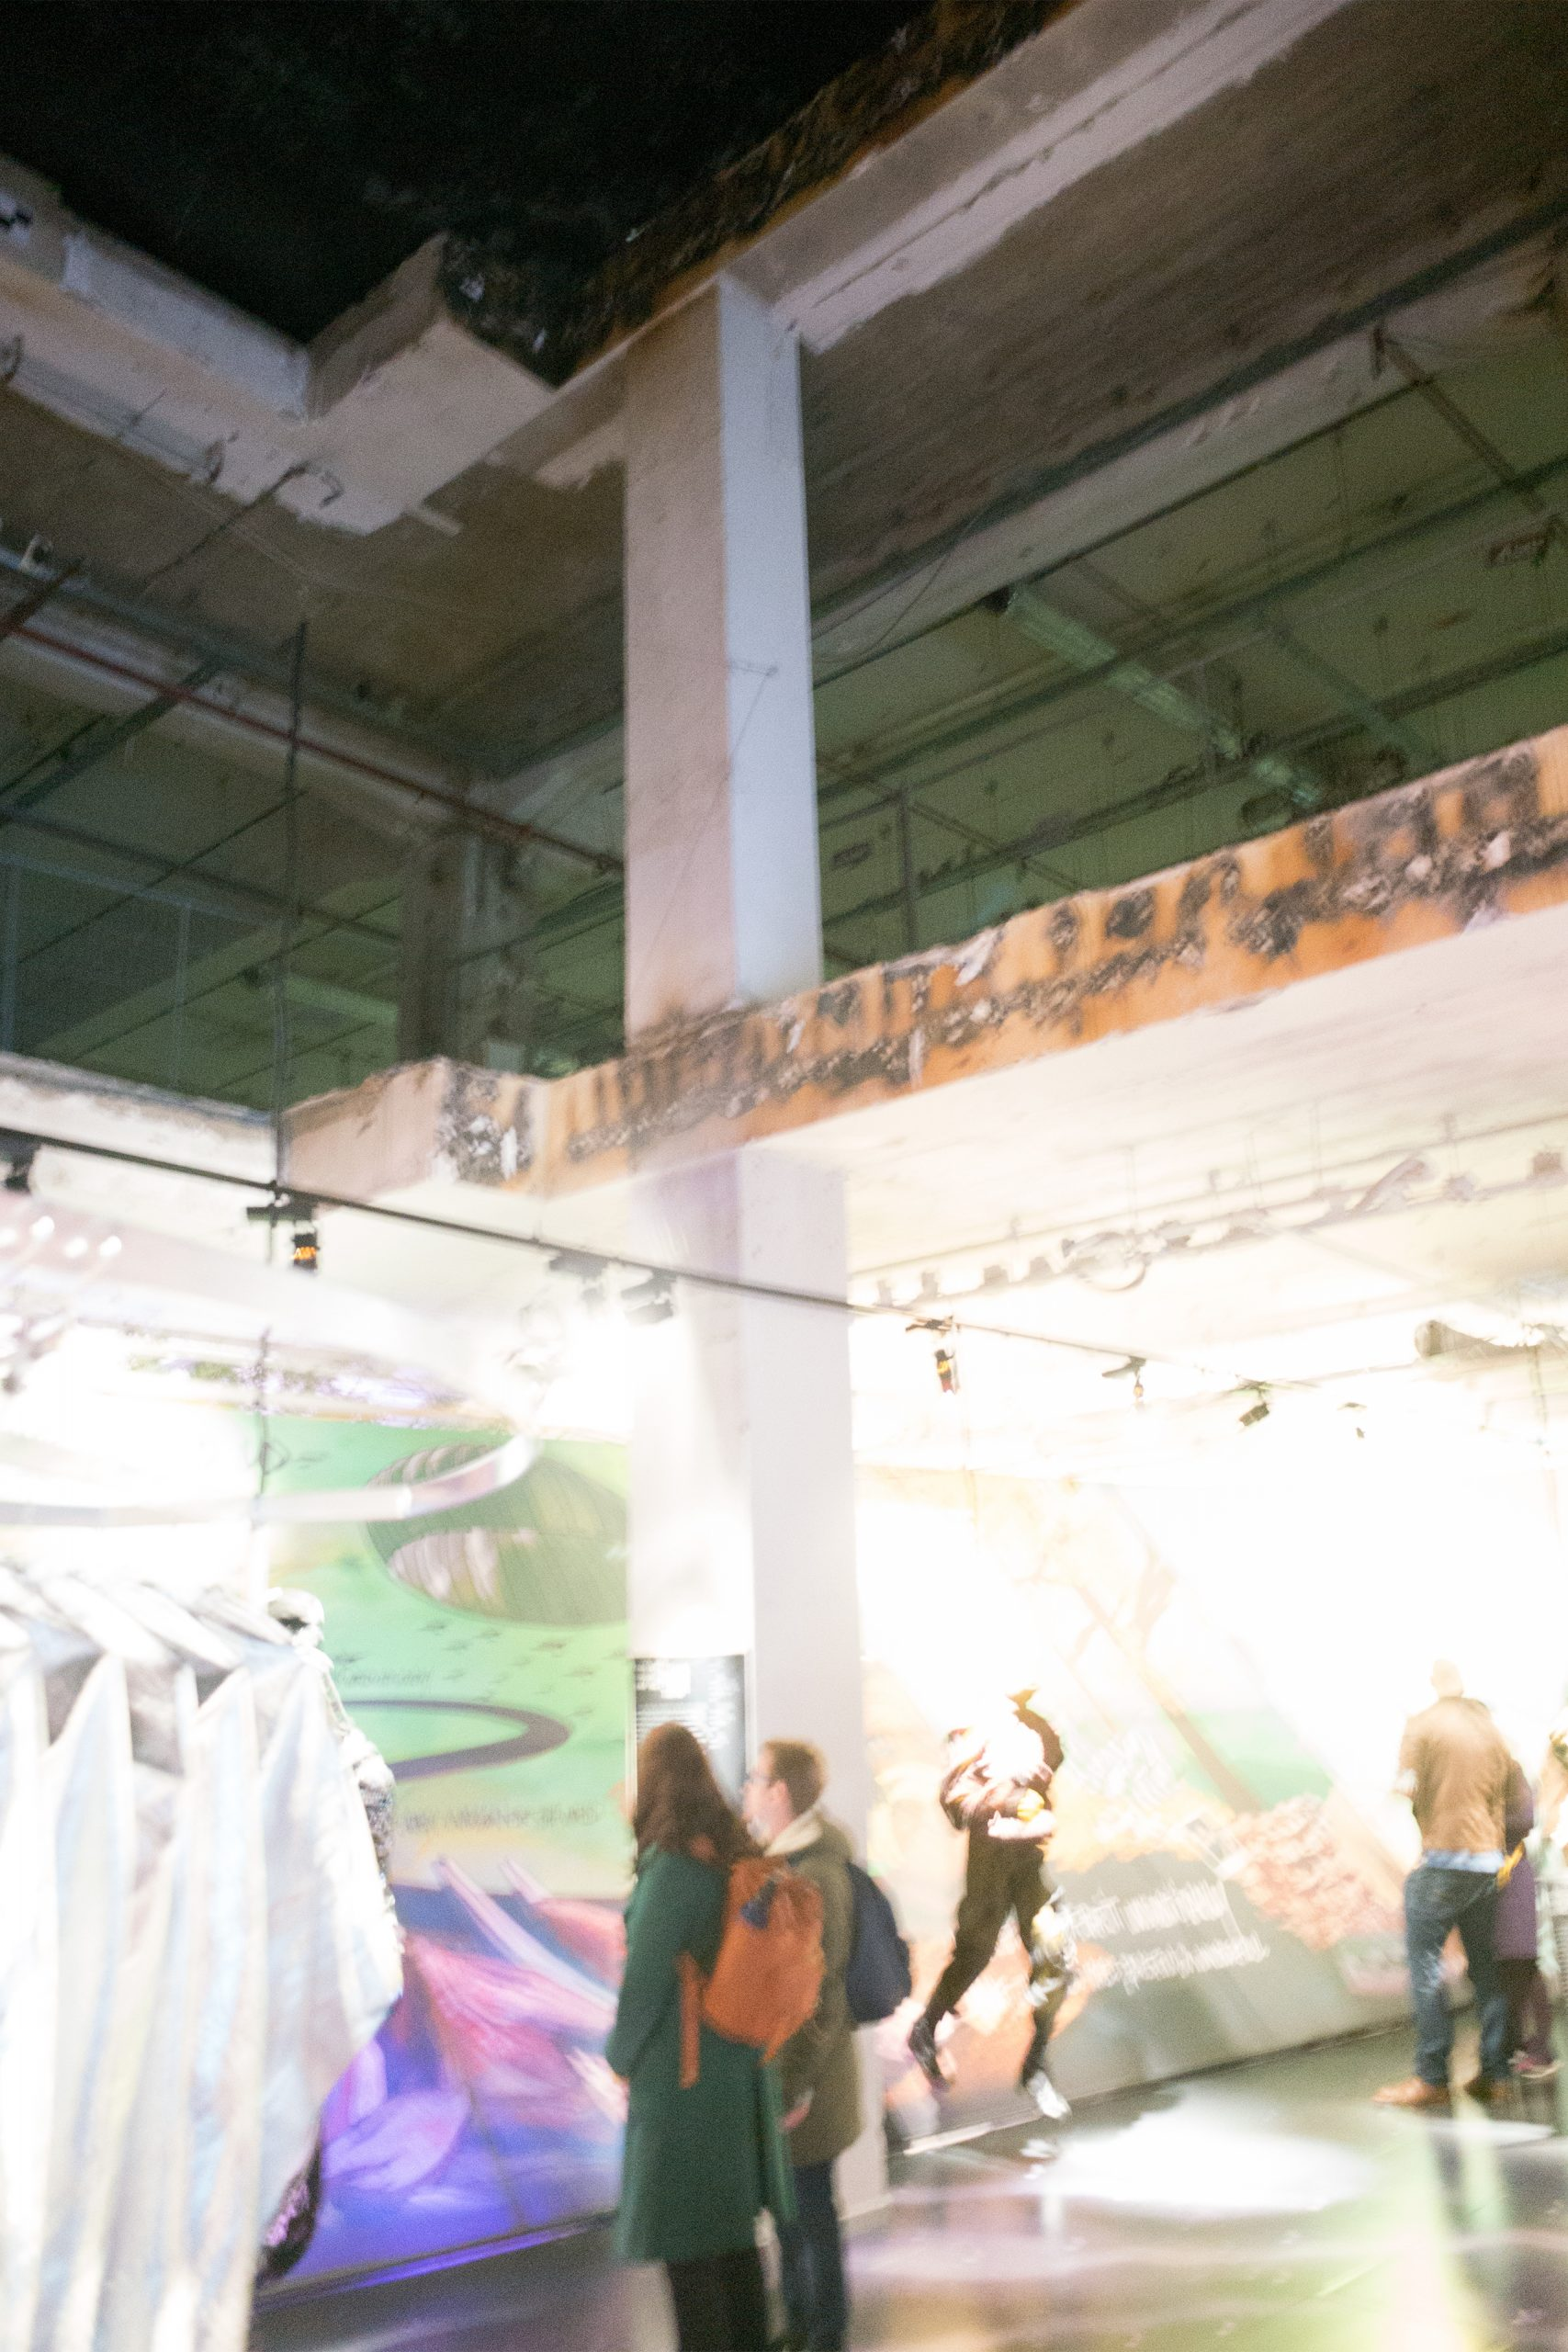 At the New Order of Fashion / Modebelofte: The End is Near exhibition during the Dutch Design Week in Eindhoven